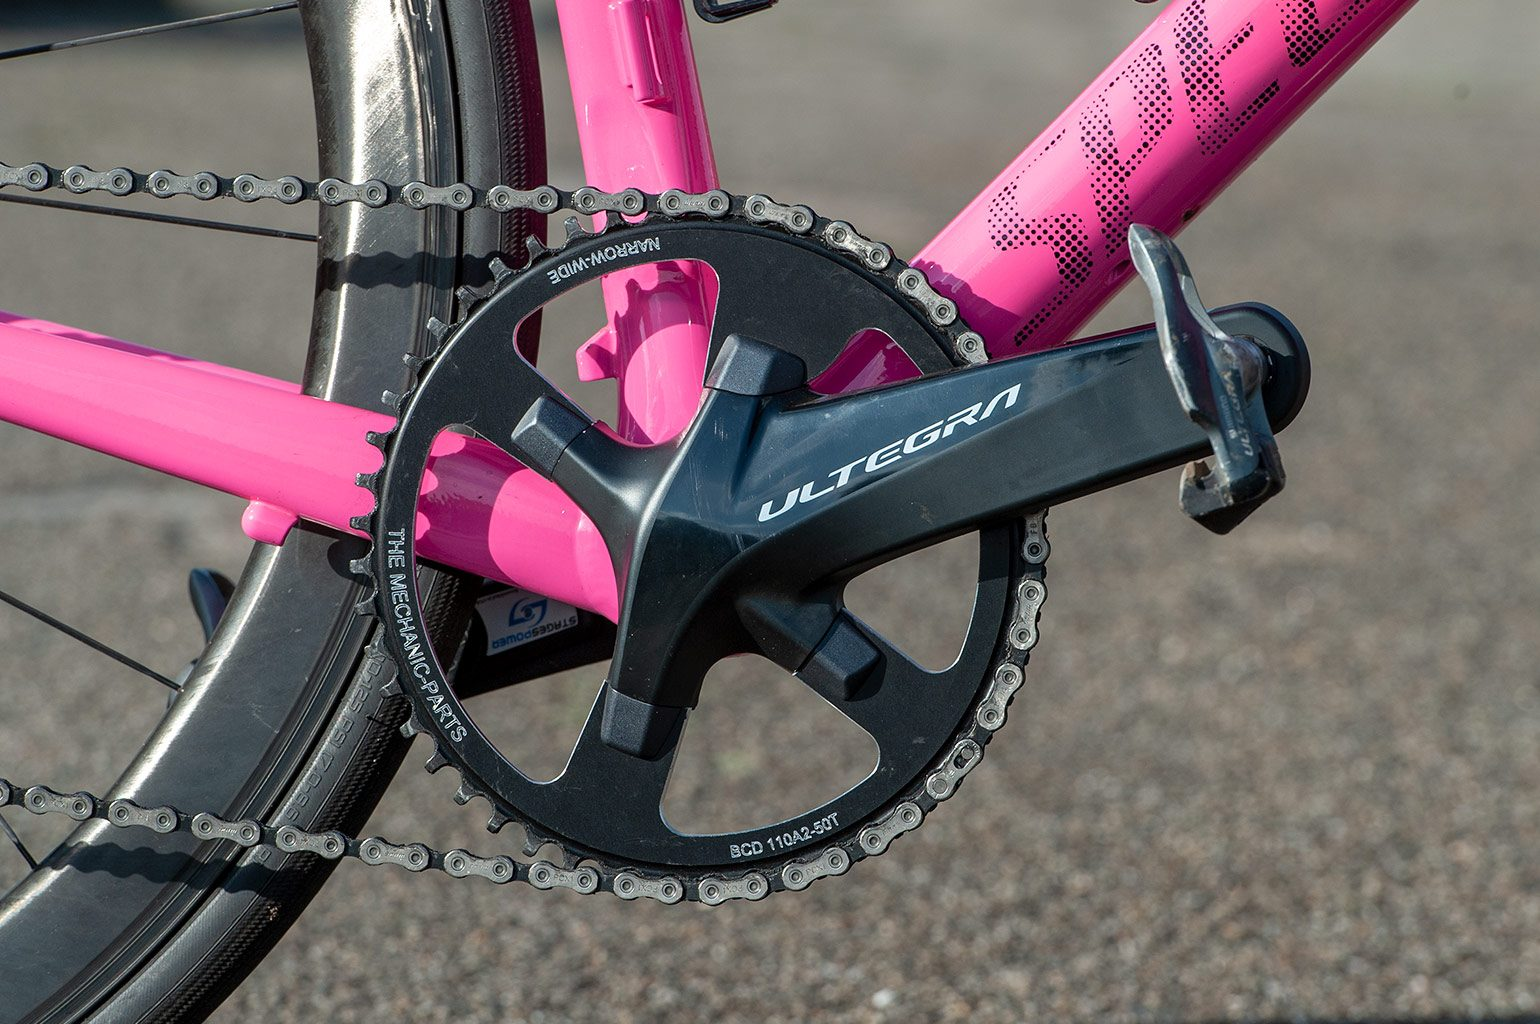 Ultregra 50T narrow wide The Mechanic Parts chainring